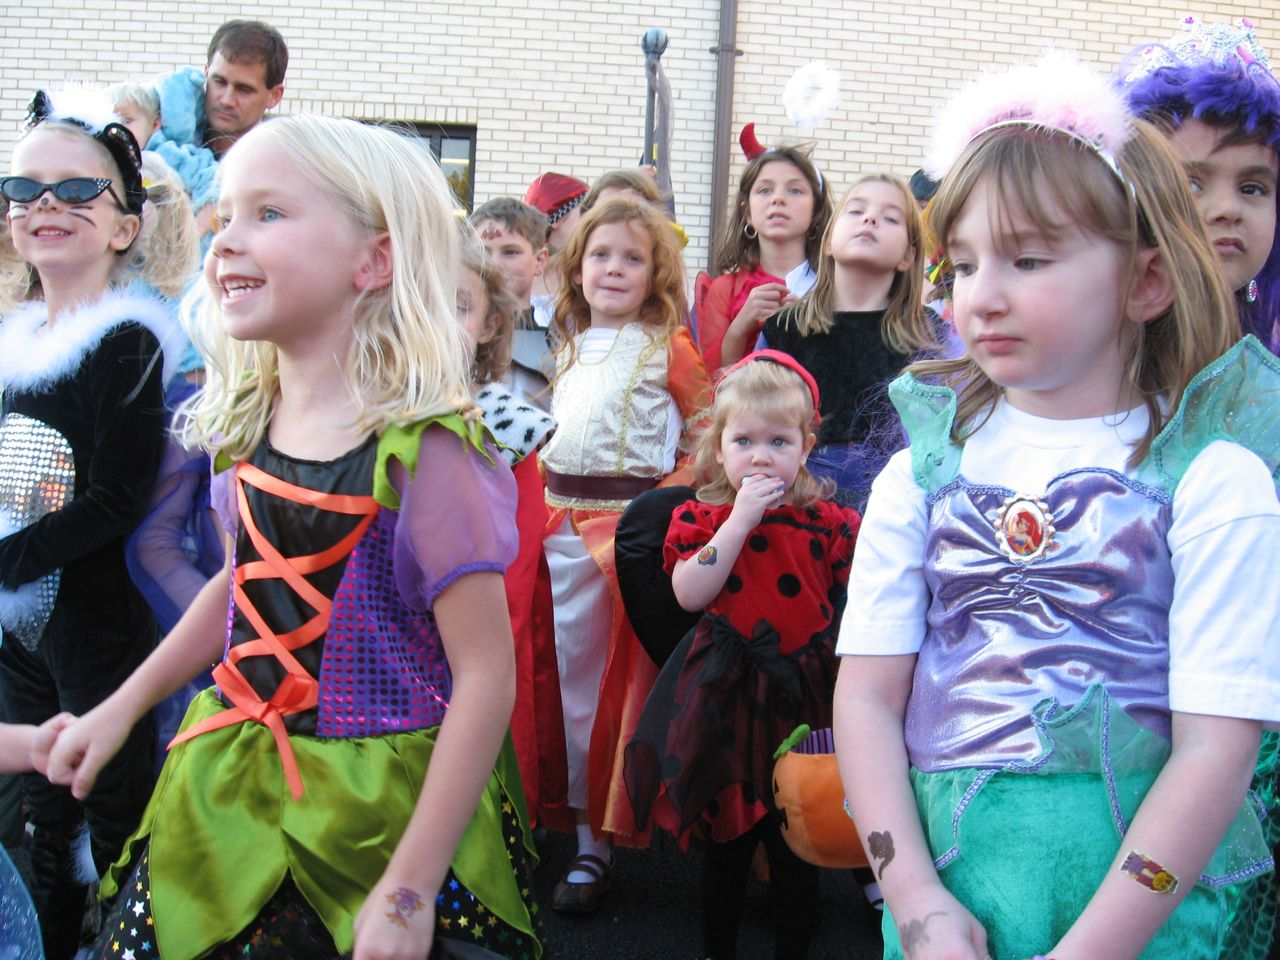 Amelia at the Church\'s Fall Festival